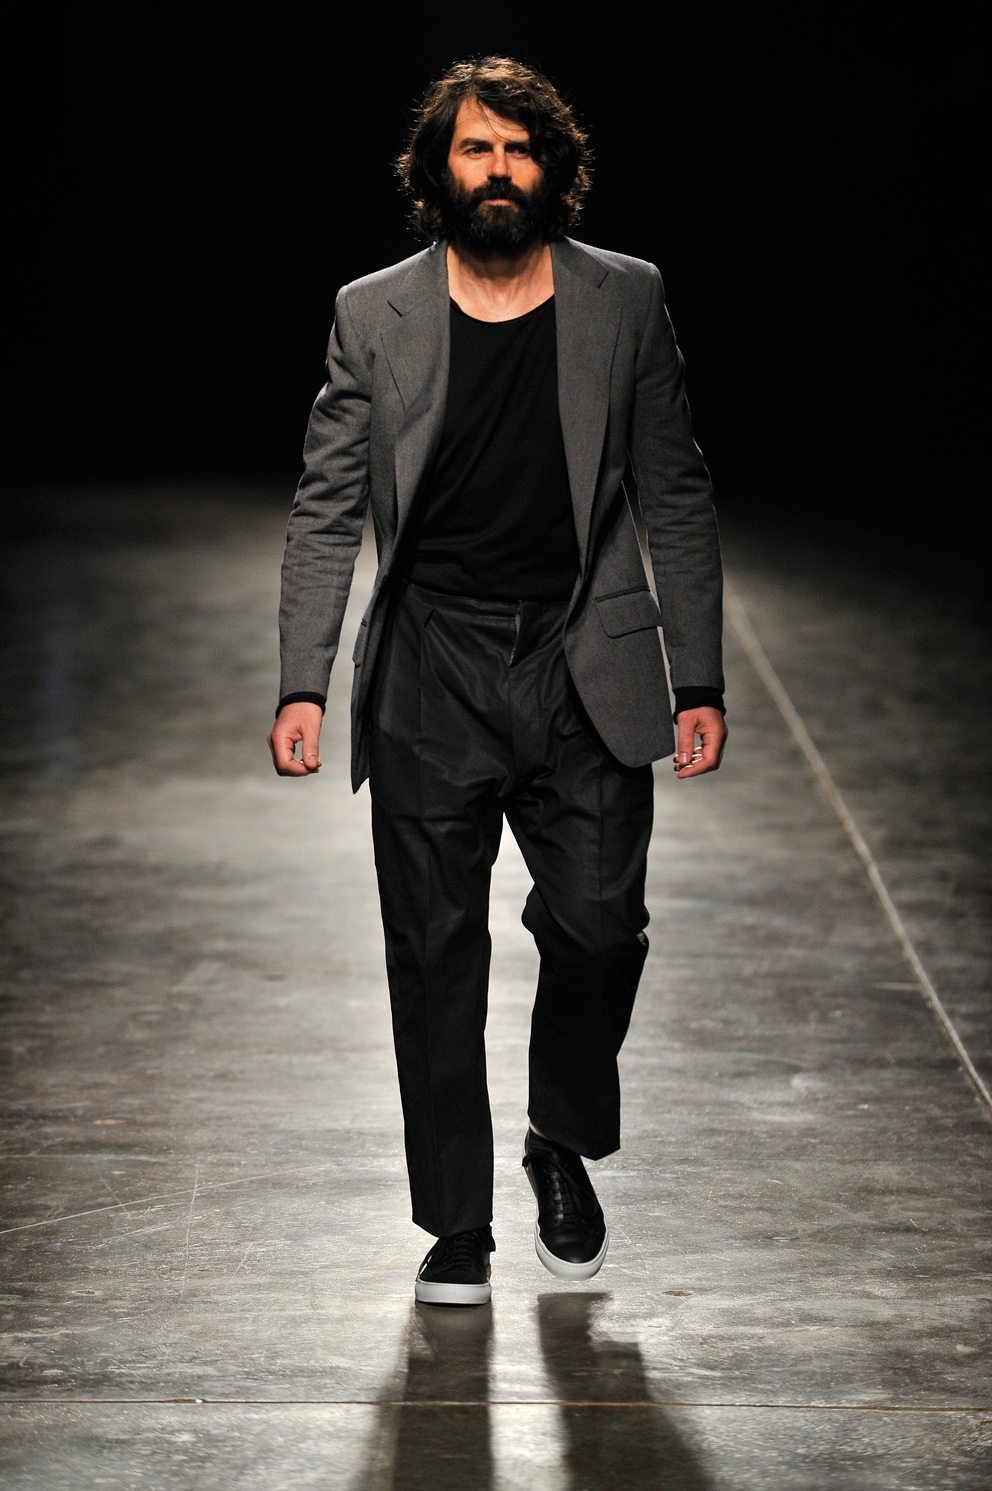 Fabio Quaranta, Autumn/Winter 2013-2014. Milan Fashion Week. Photo: © White Events by Curva di Contrasto